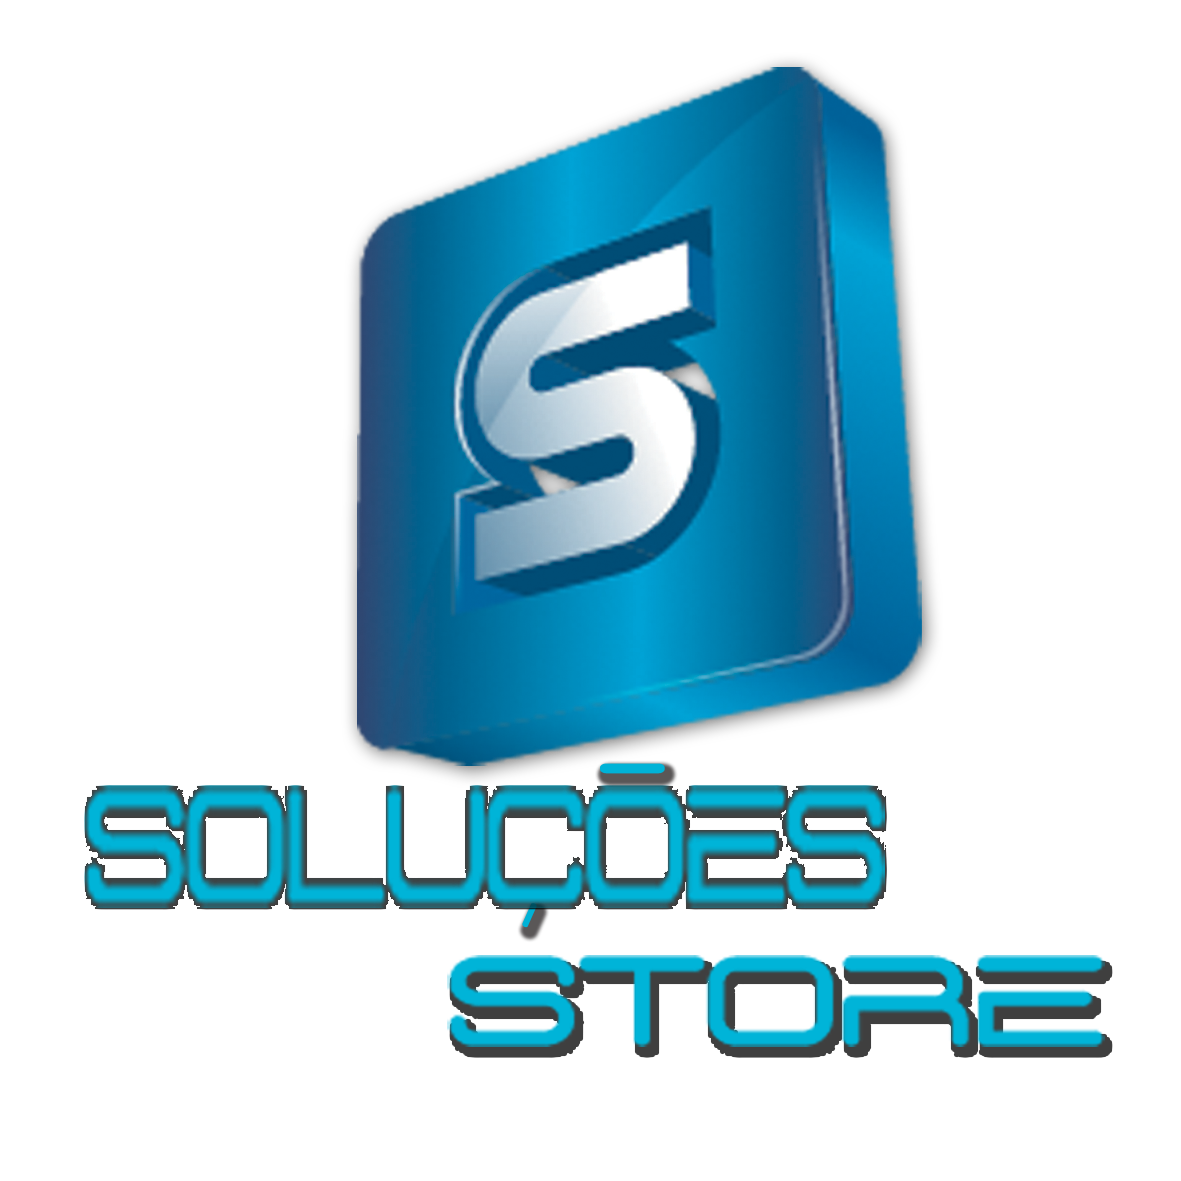 SOLUCOES_STORE